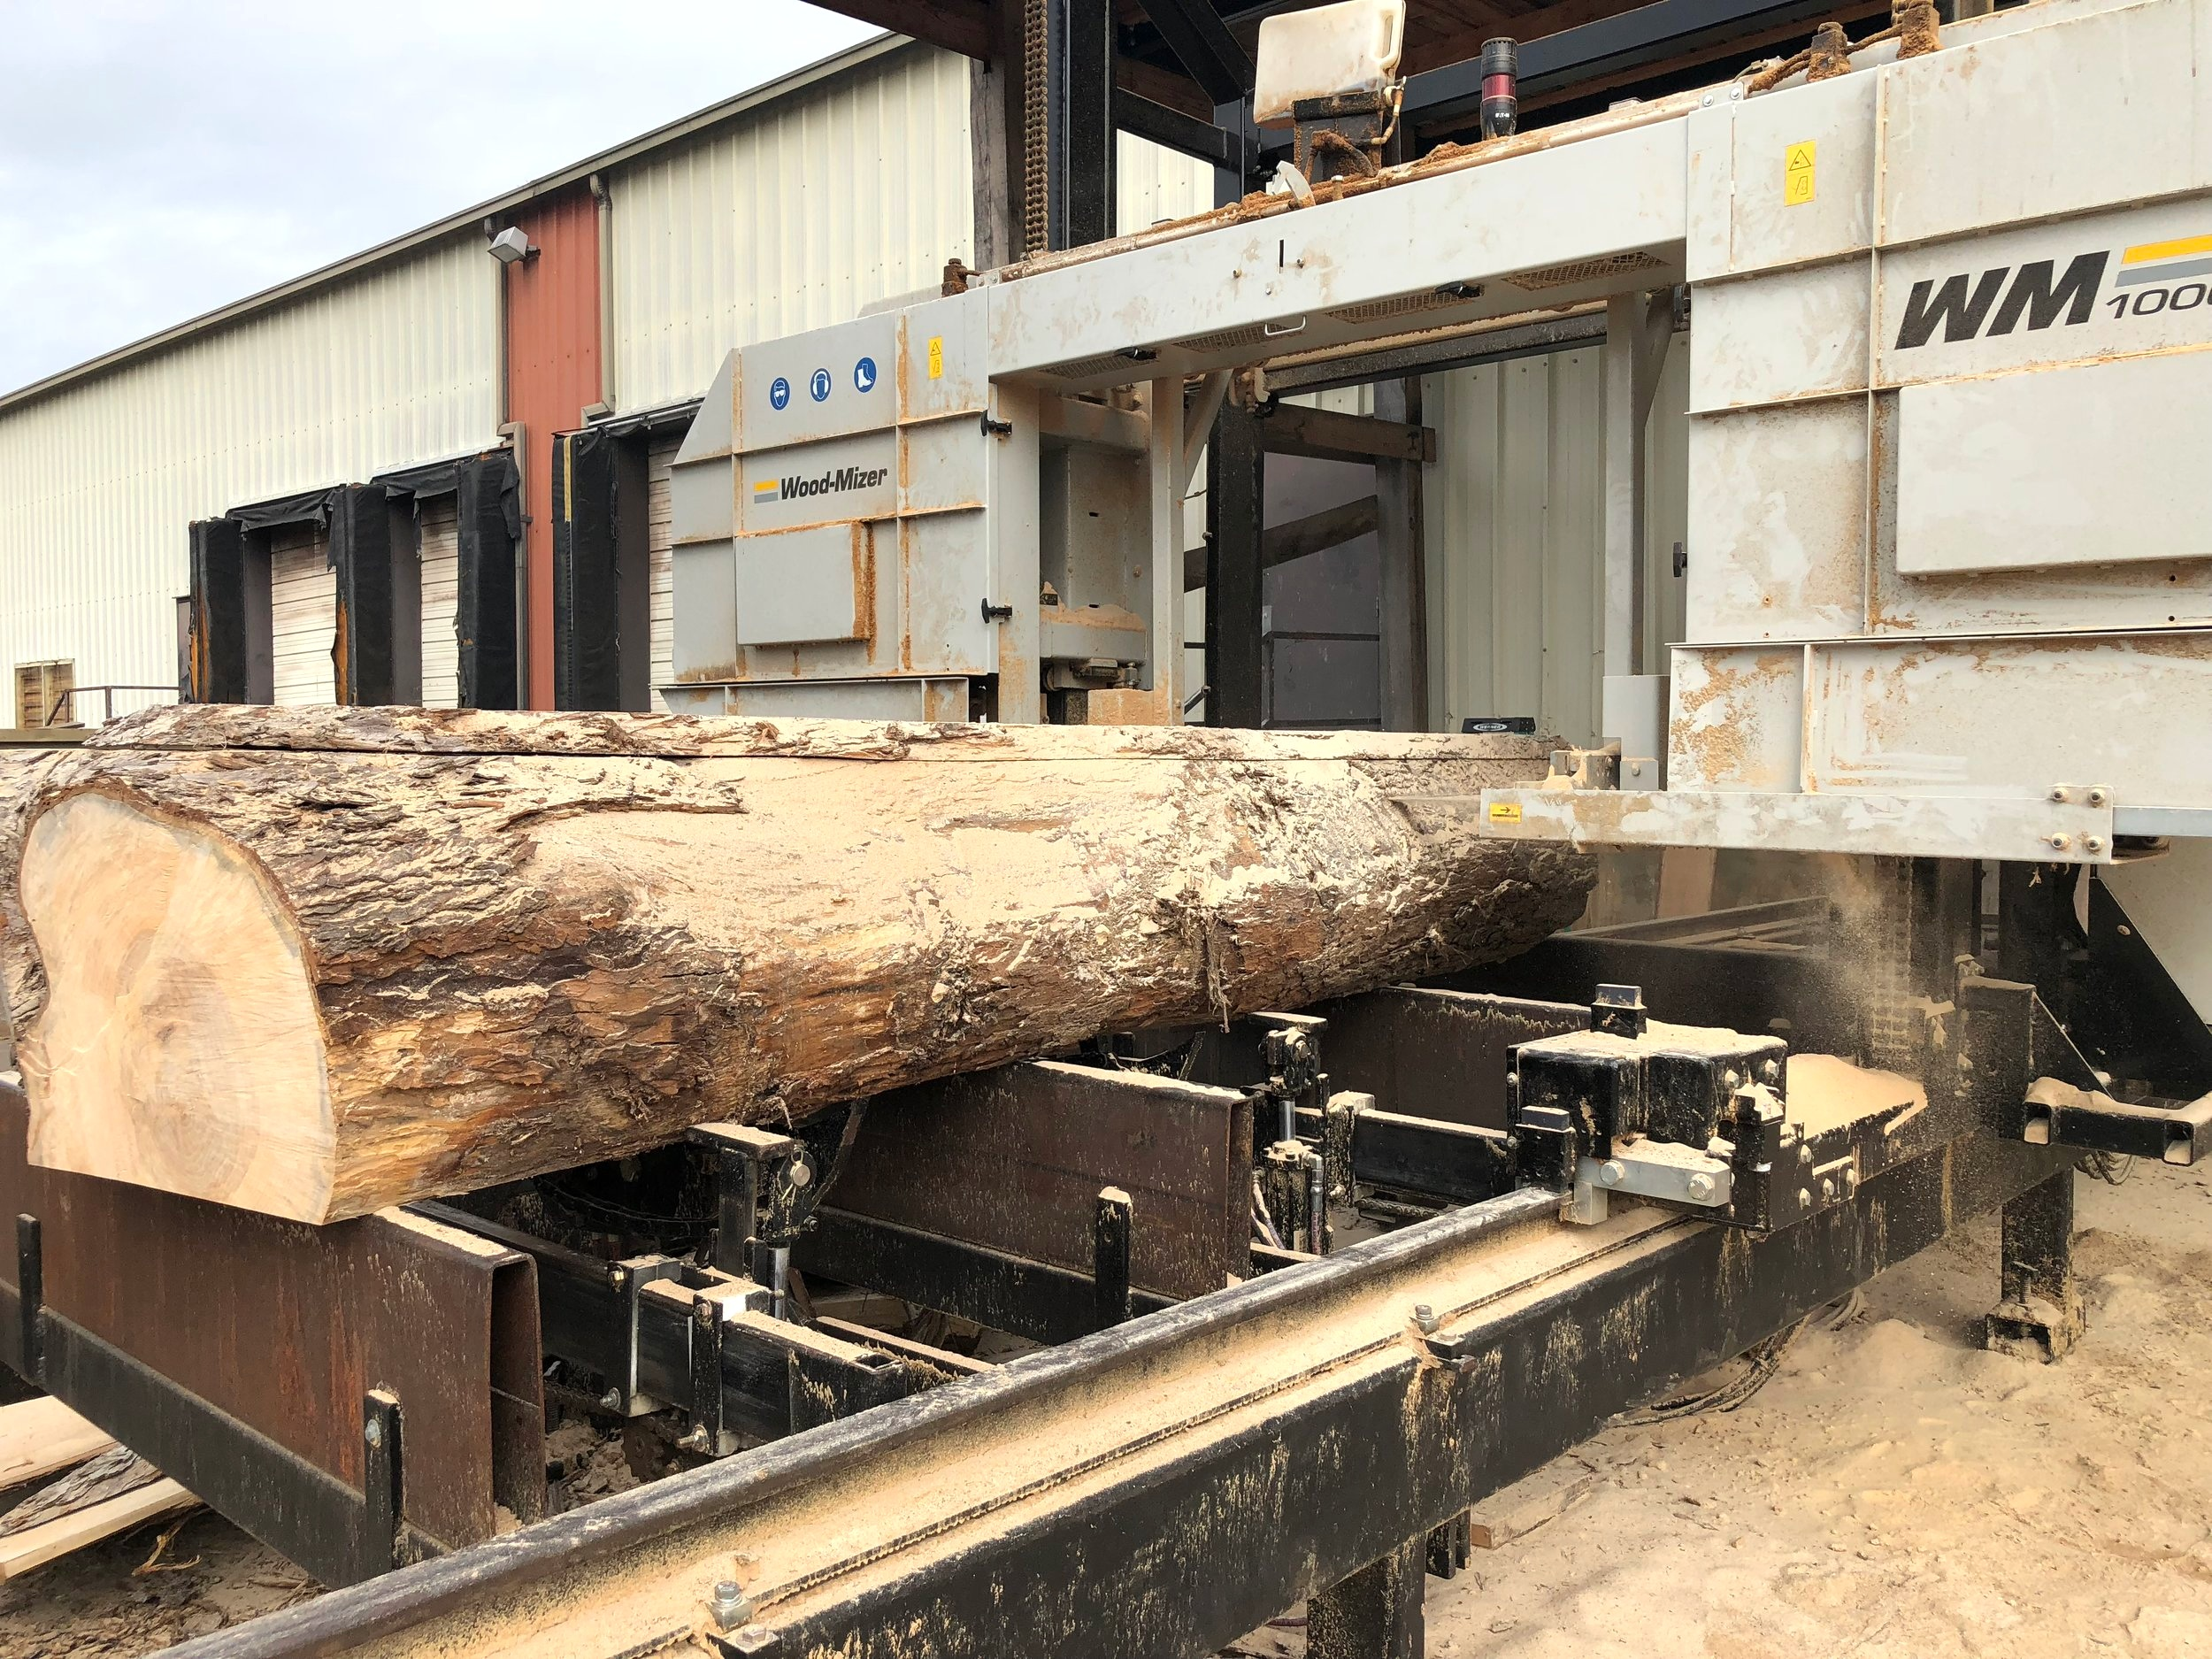 "Logs are sawed into slabs on the Wood-Mizer 1000 mill. Fun fact: Eutree has one of the largest capacity sawmills in the Southeast sawing logs up to 68"" diameter."